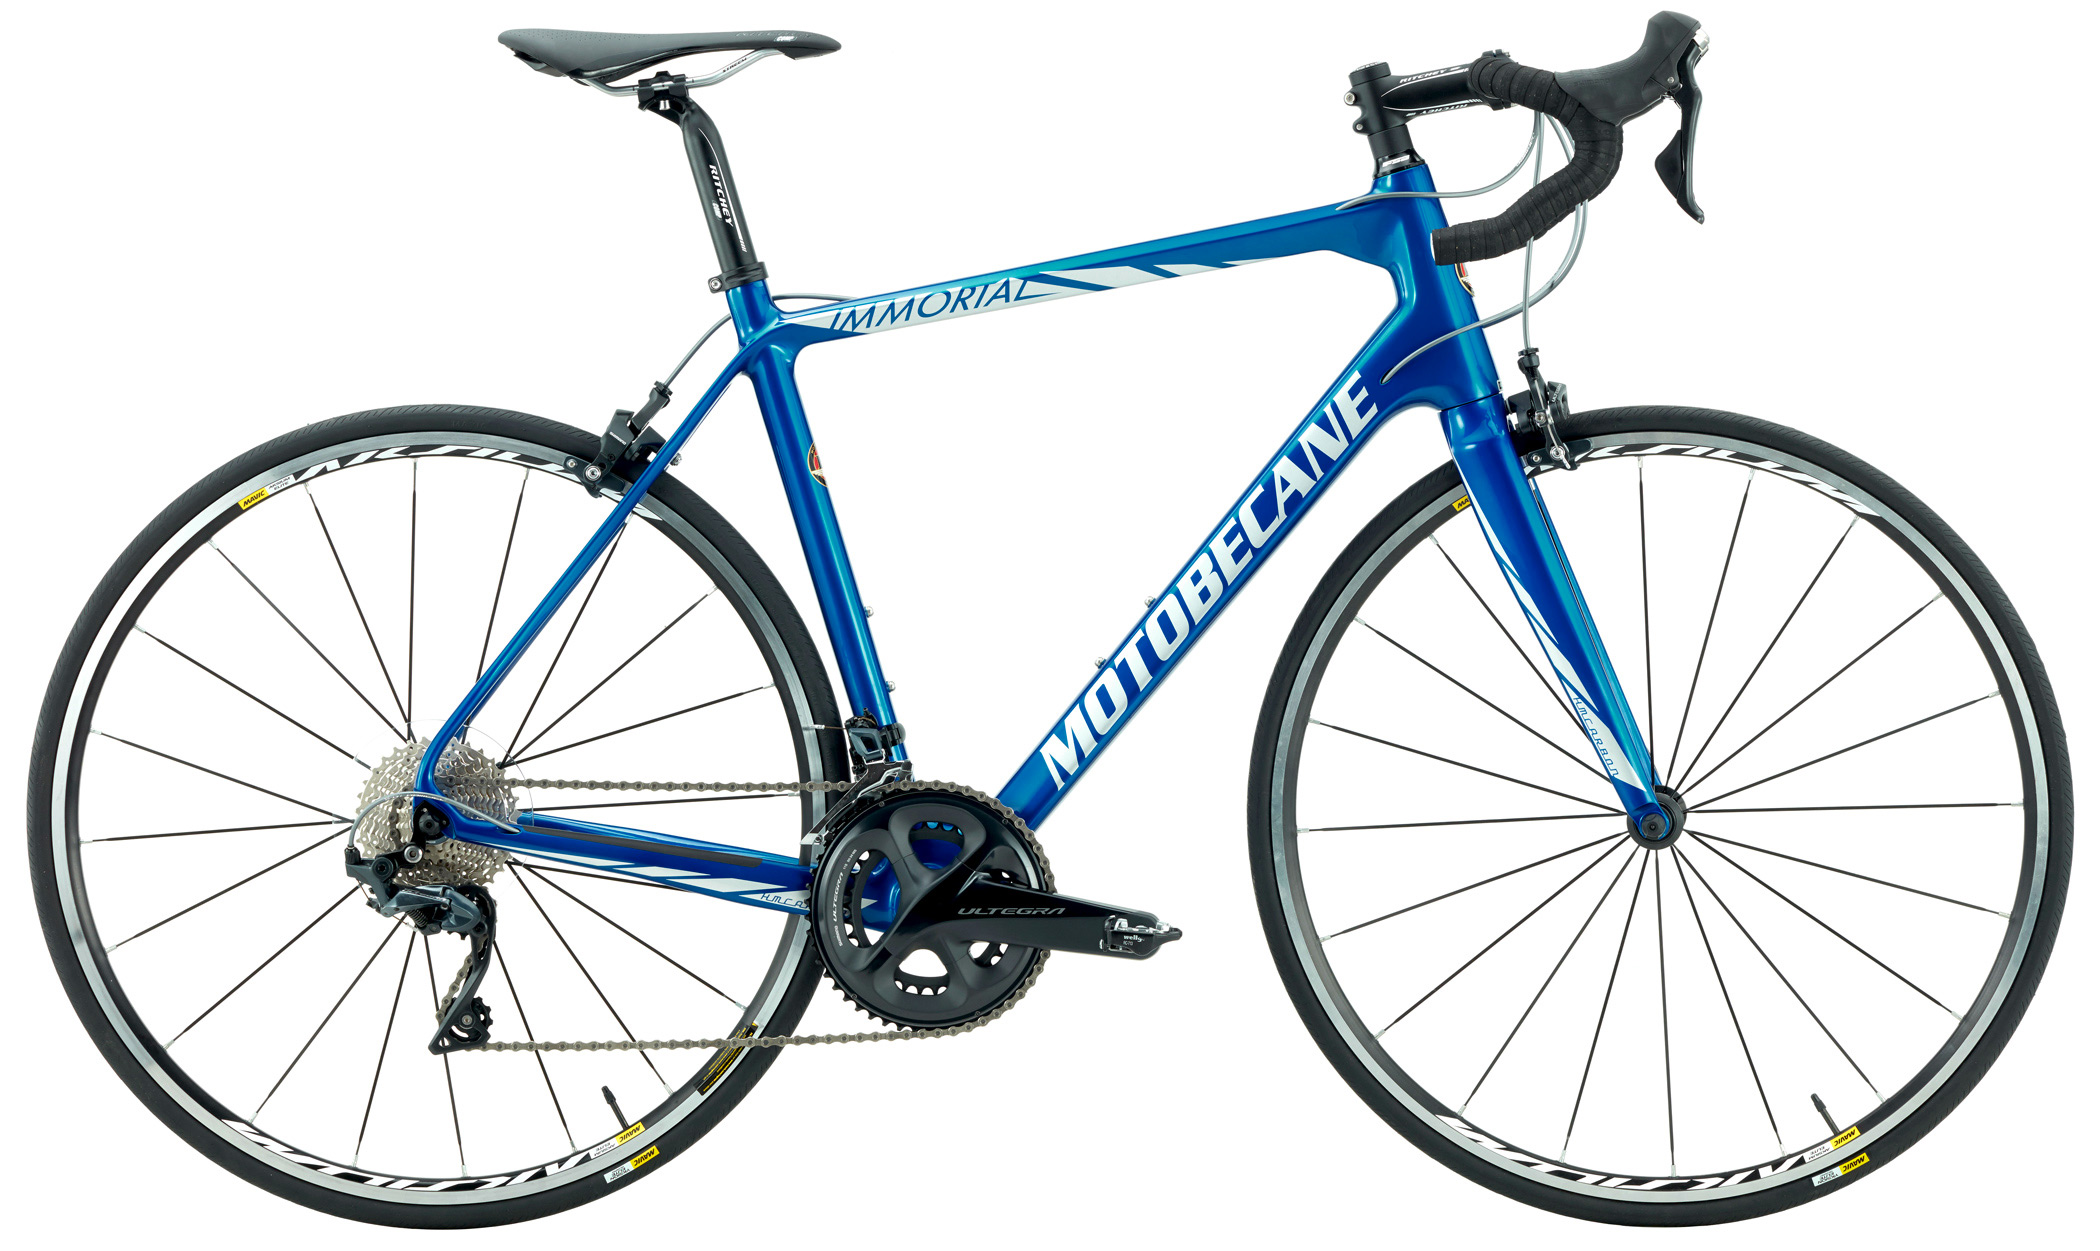 Bikes 2019 Motobecane Immortal Pro Ultegra Equipped 22 Speed Carbon Road Bike Image